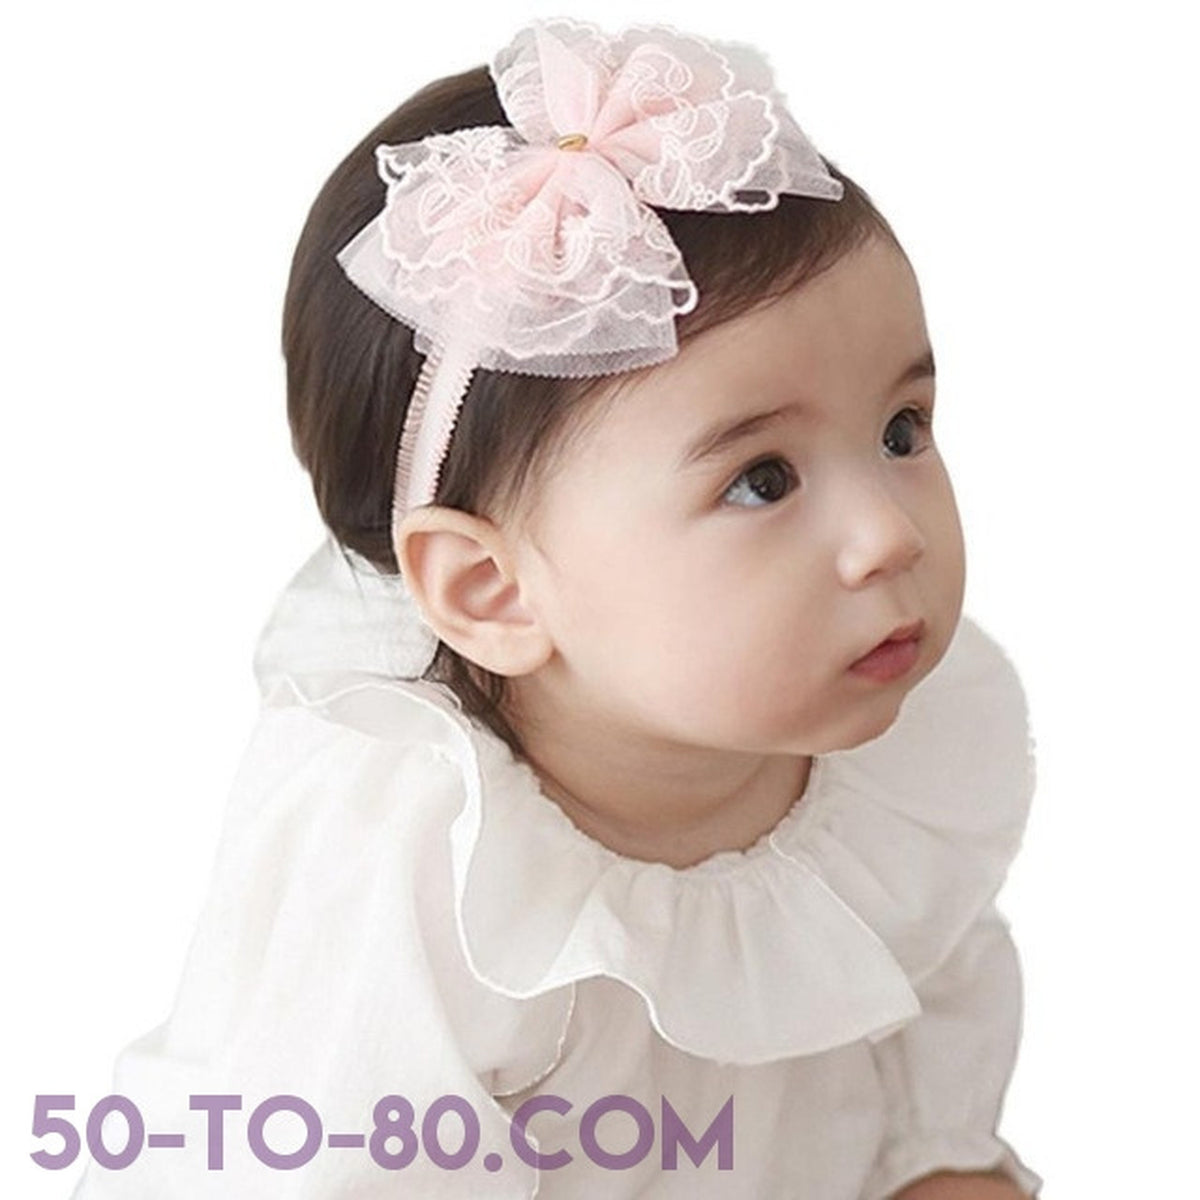 Baby Girl s Fancy Classic Ribbon   Bow Tie Headband - Pink or White Co –  50-TO-80 697b95e828b